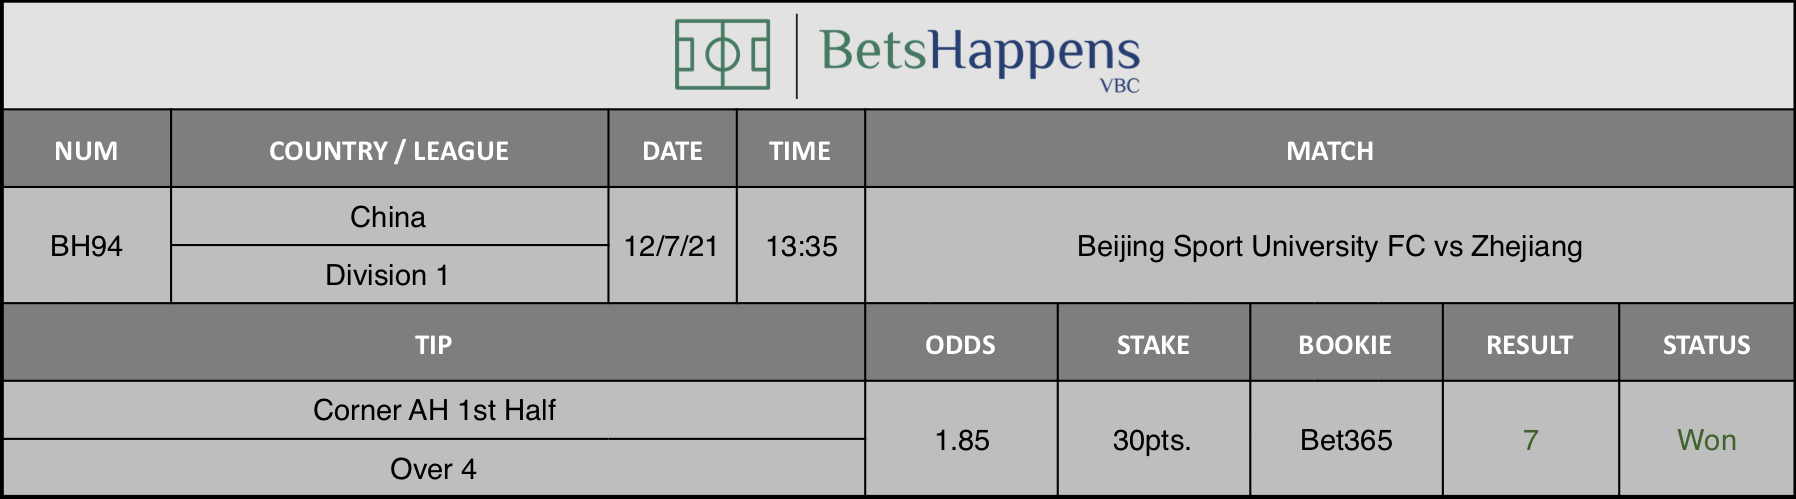 Results of our advice for the Beijing Sport University FC vs Zhejiang match in which CCorner AH 1st Half Over 4 is recommended.